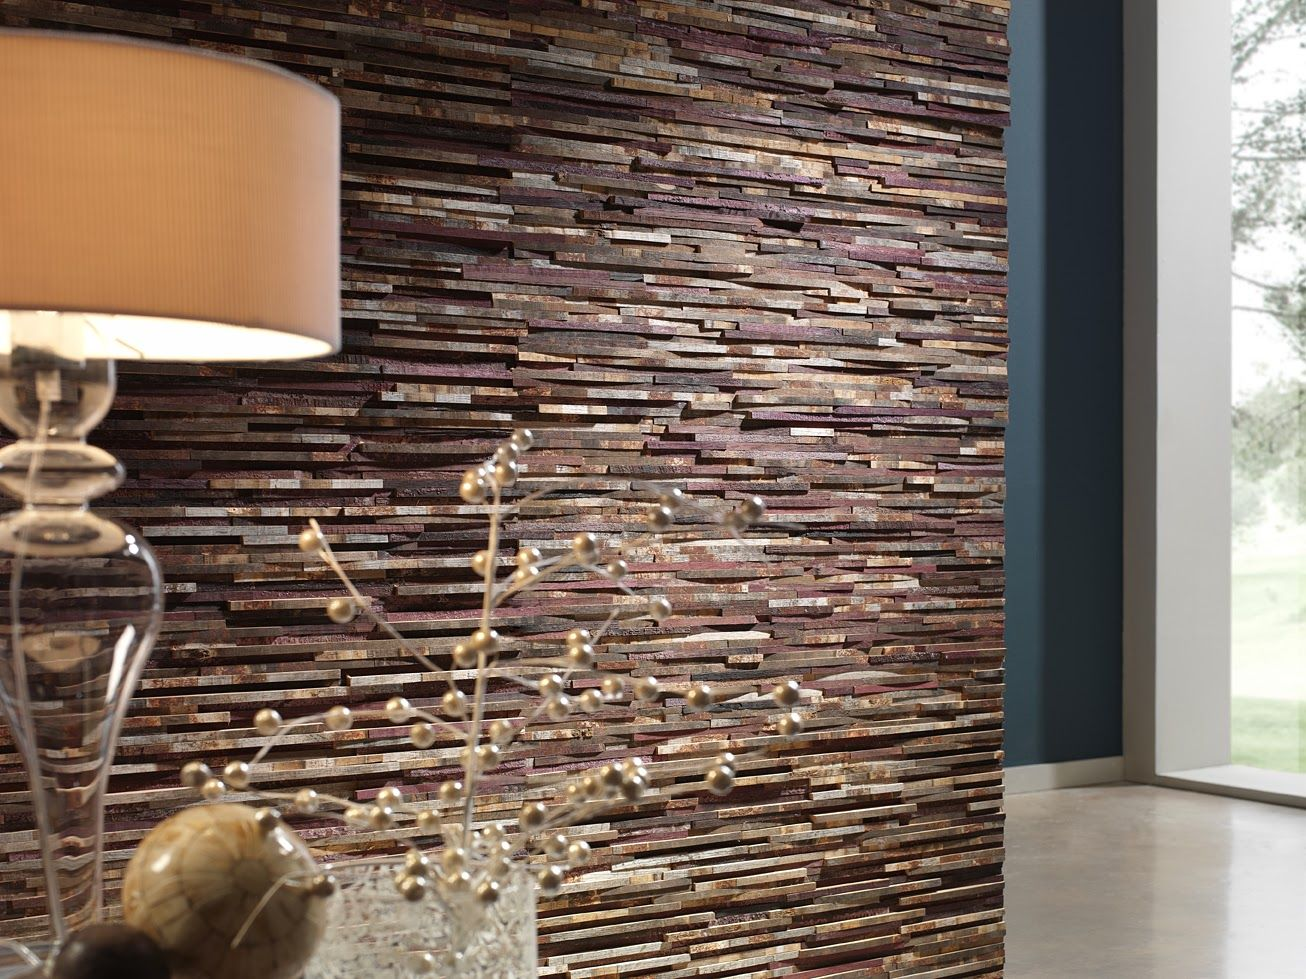 FAUX WALL IDEAS House Ideas,Fabulous Faux Contemporary Interior Wall Panels  From Dreamwall,Faux